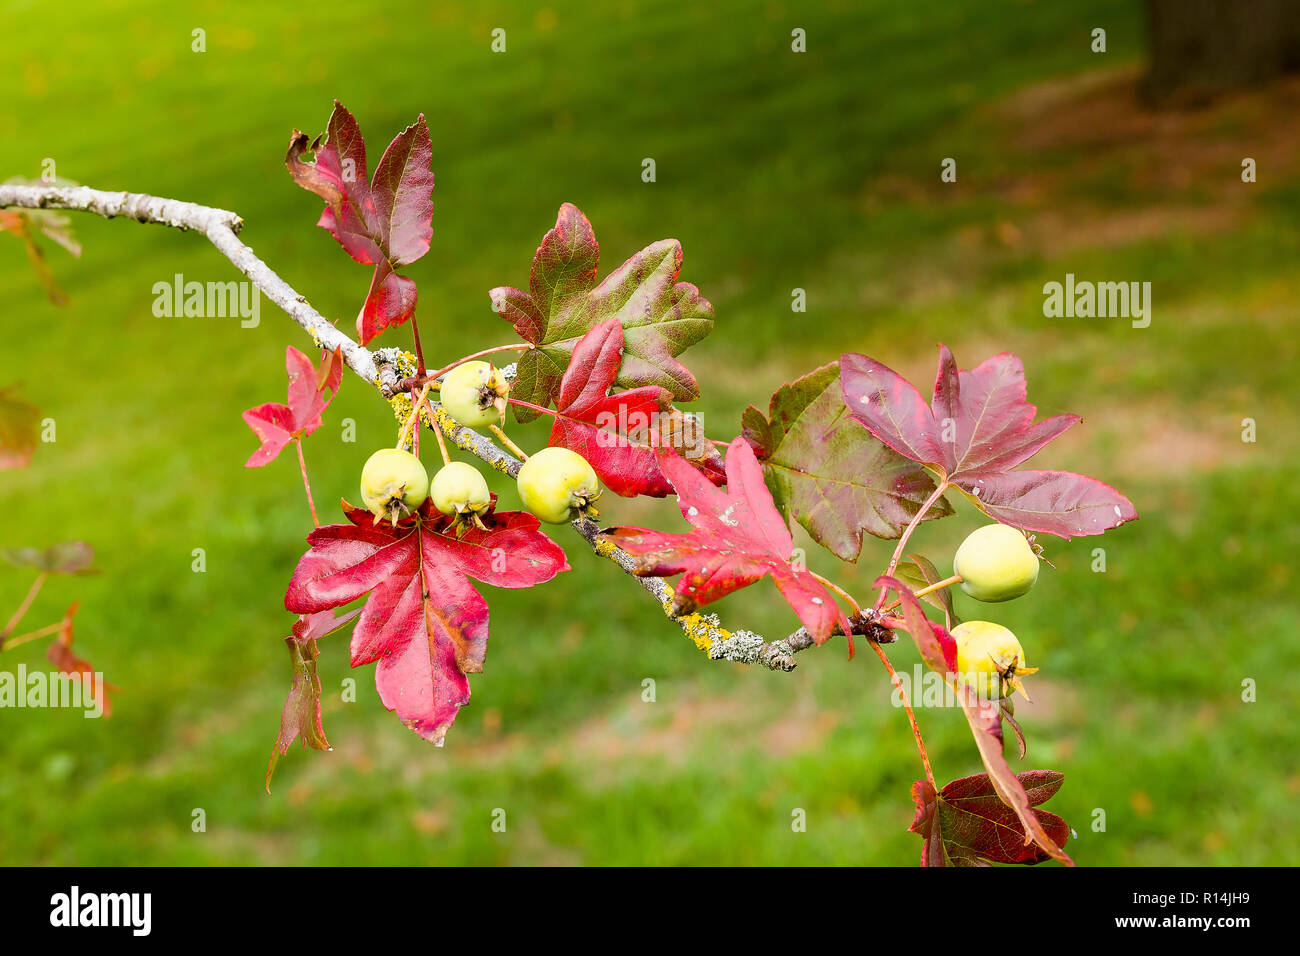 Maple leafed crab apple tree showing fruit and autumn leaves. Malus trilobata Guardsman. - Stock Image